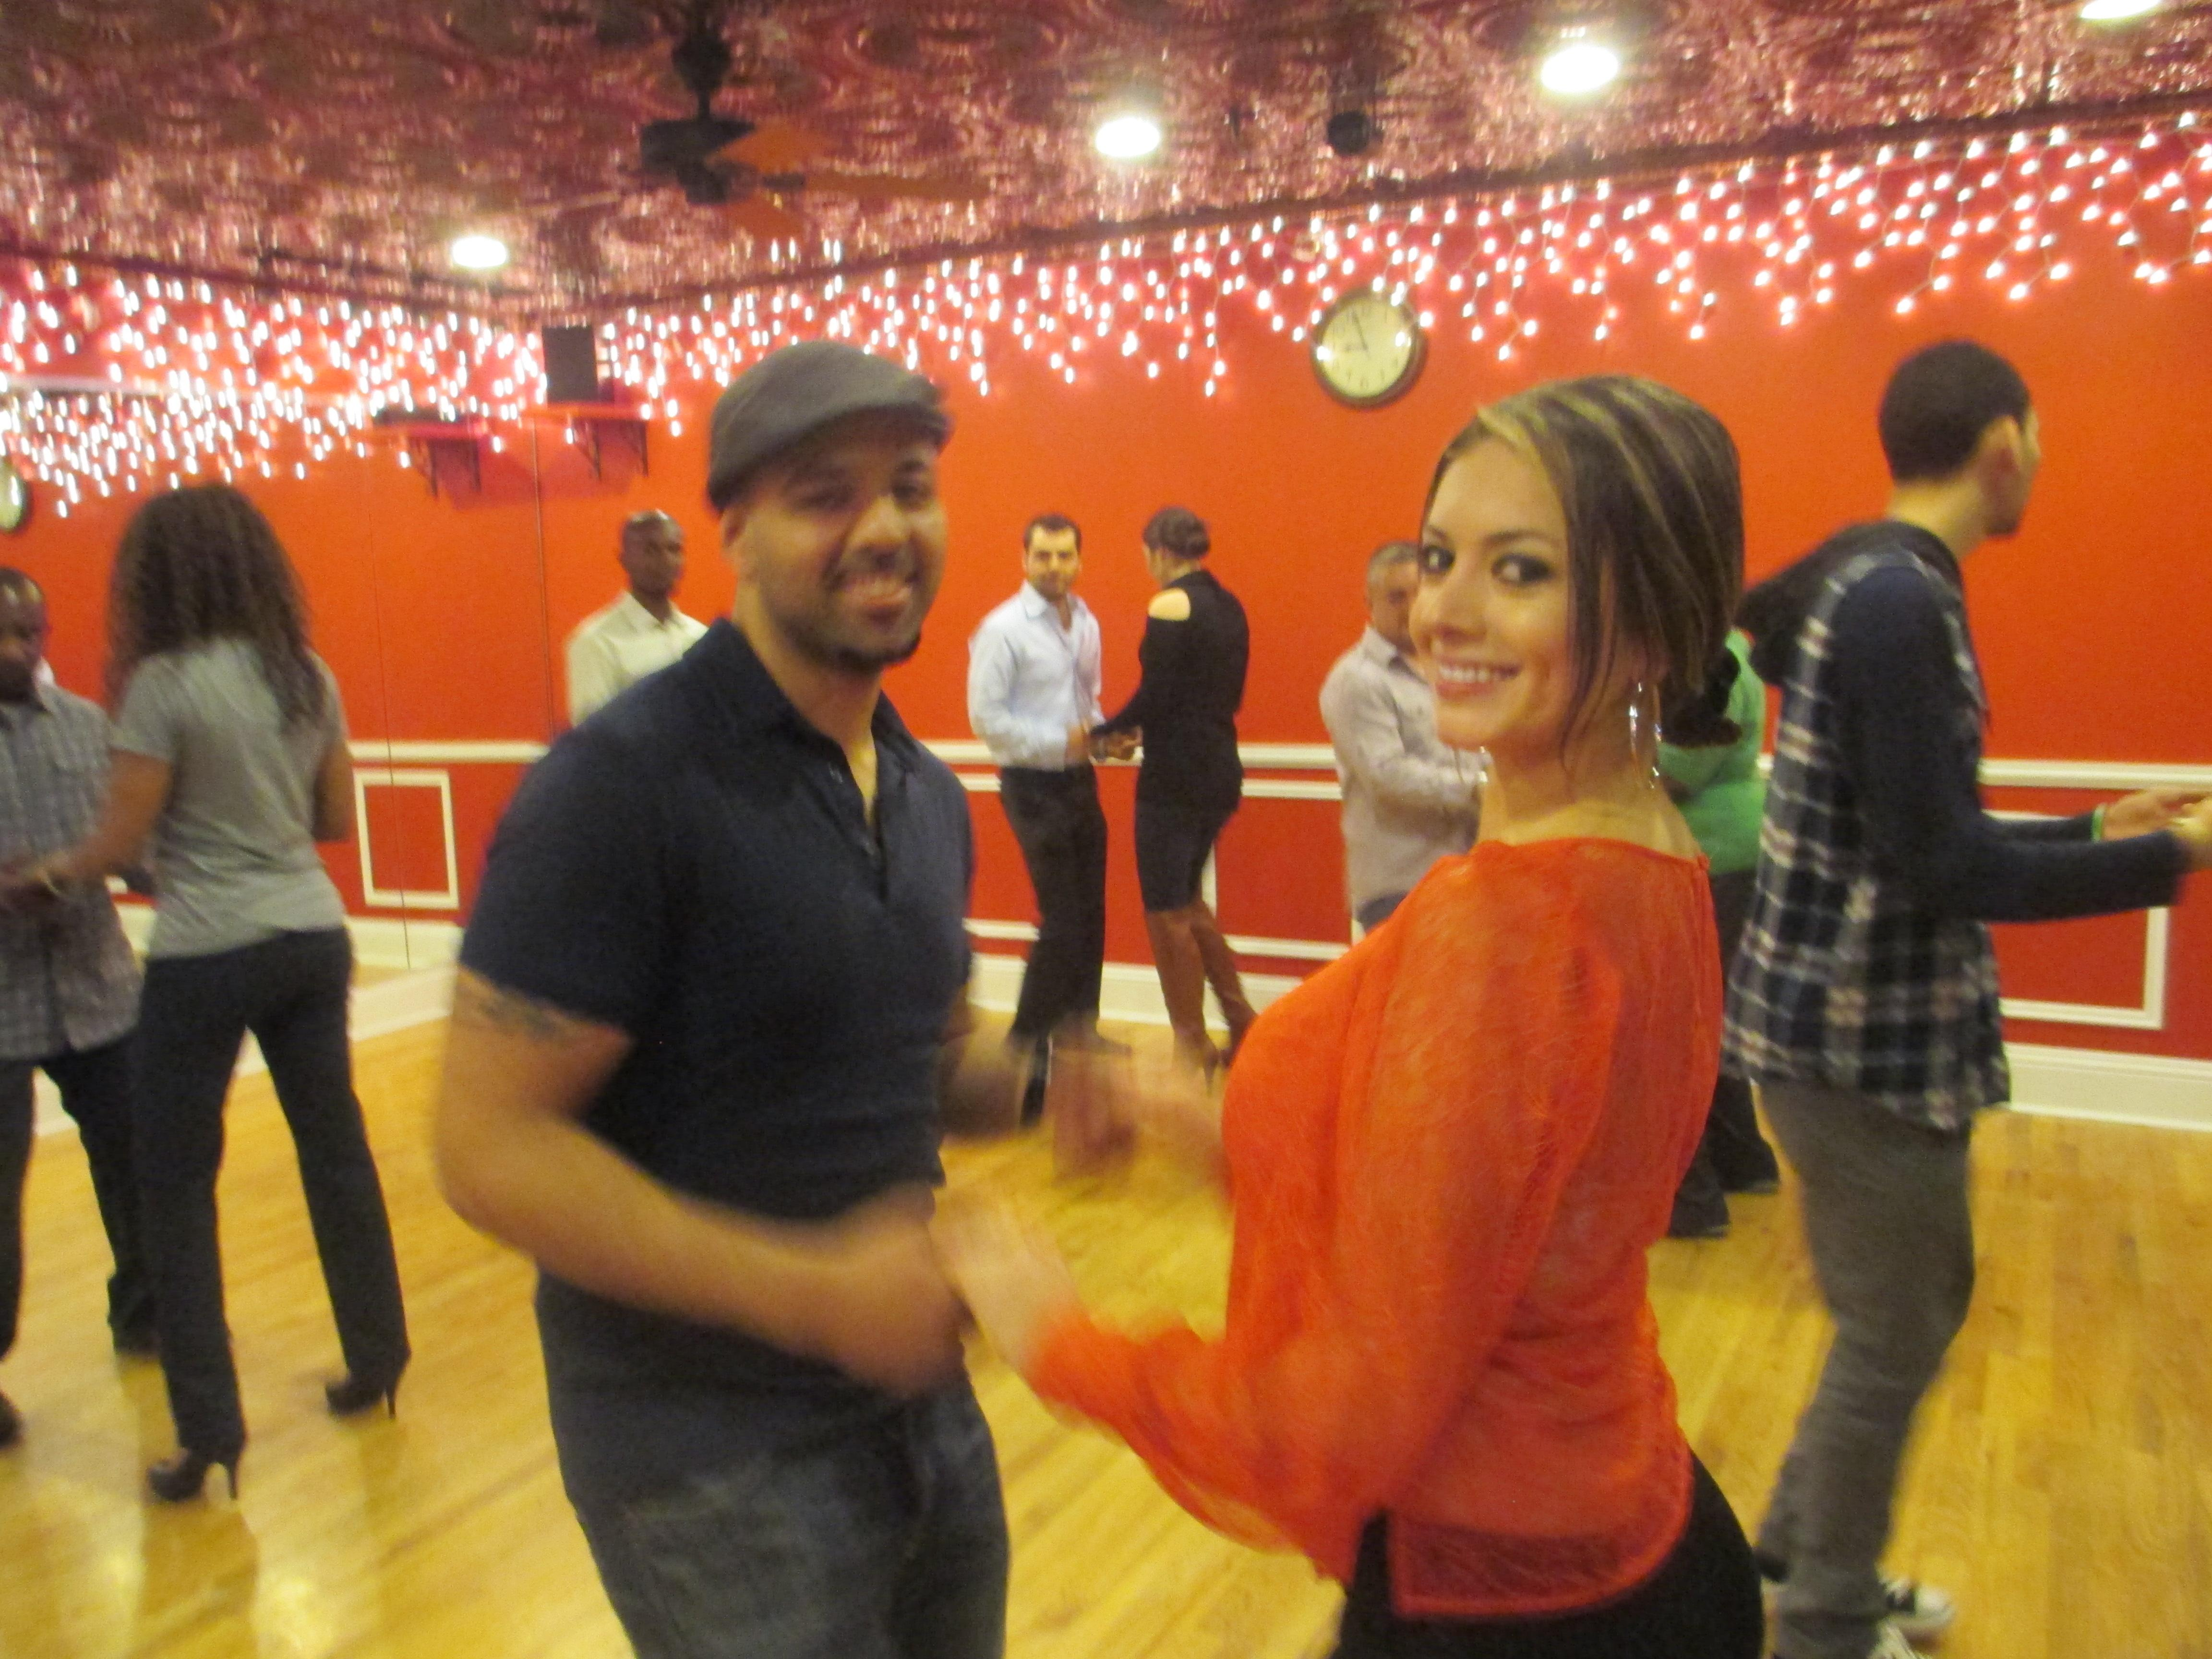 Salsa Dance Classes Brooklyn for FREE